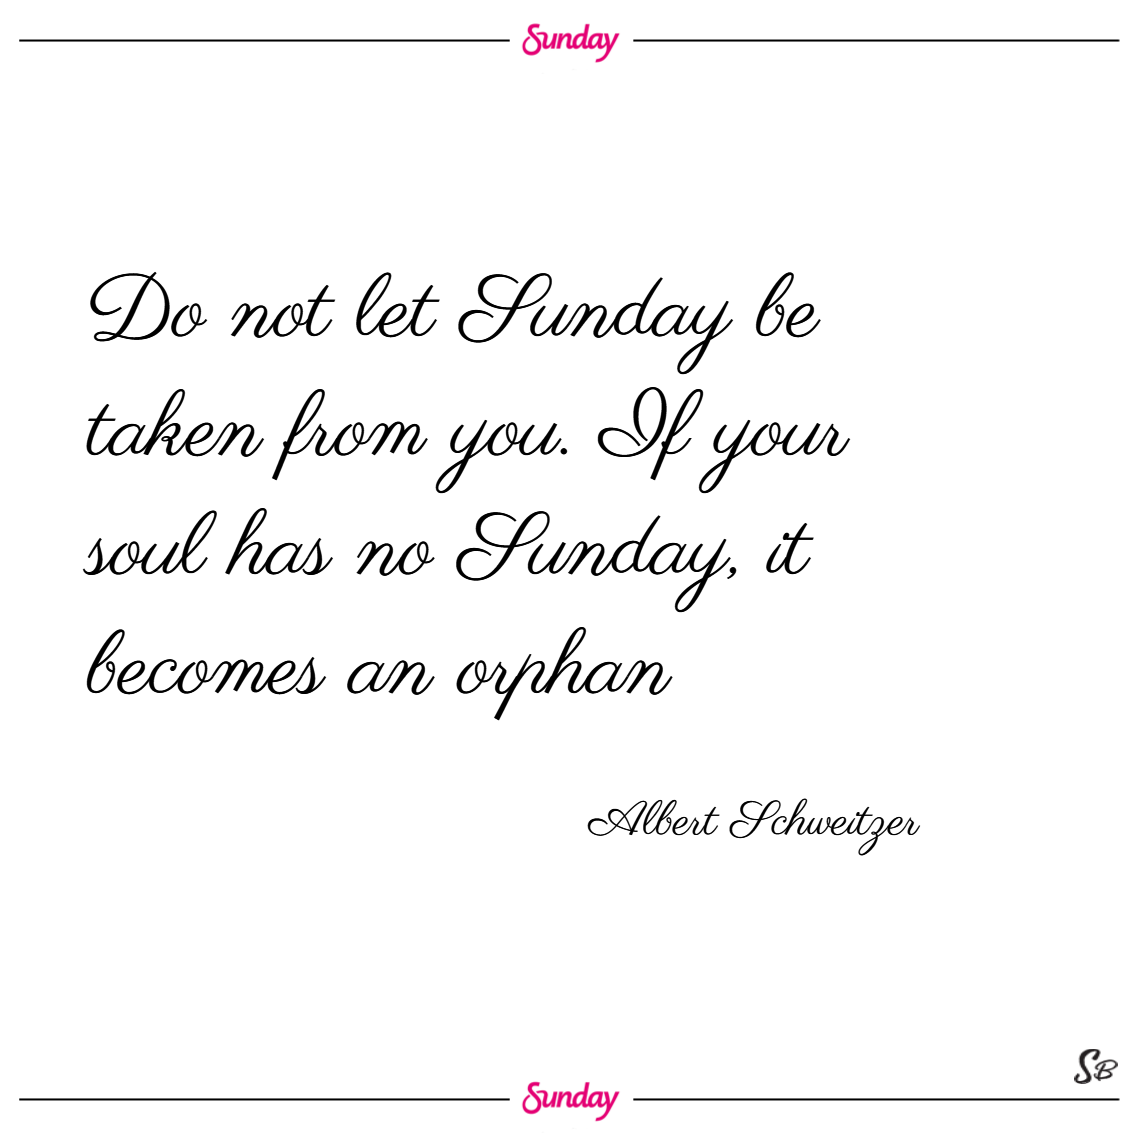 Do not let sunday be taken from you. if your soul has no sunday, it becomes an orphan. – albert schweitzer